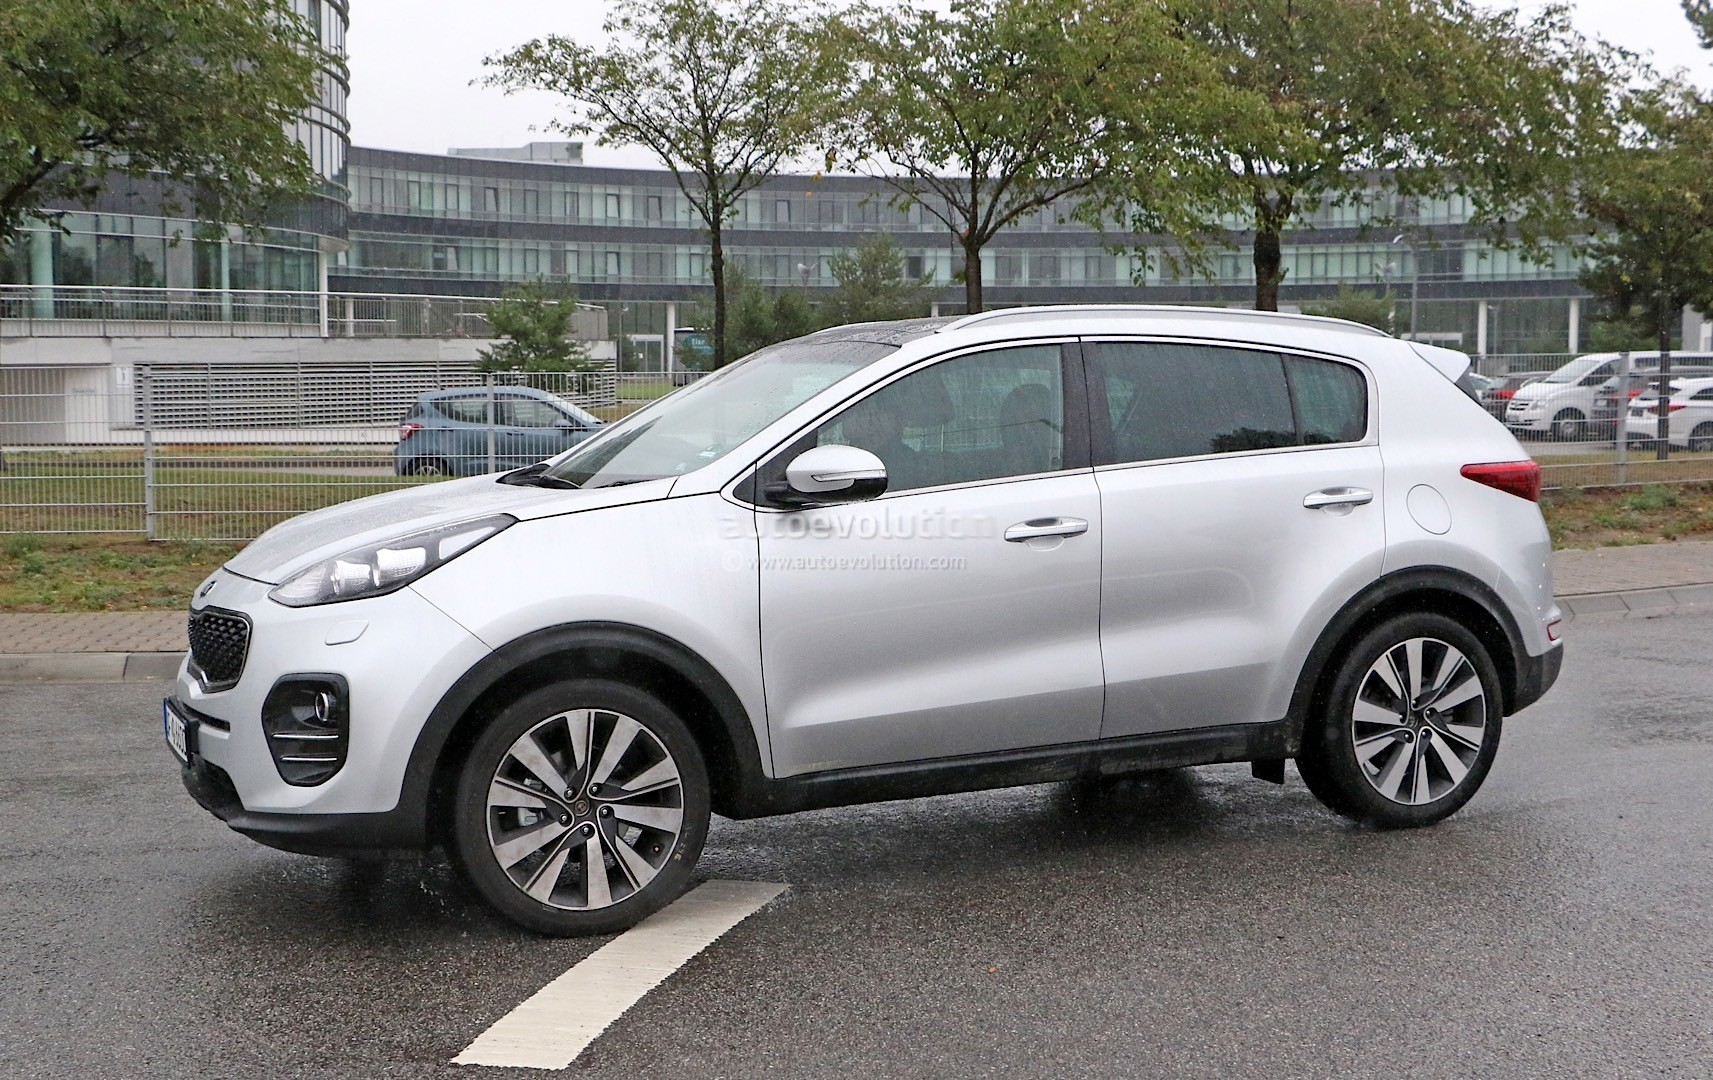 kia sportage kia sportage suv 2018 kia canada autos post. Black Bedroom Furniture Sets. Home Design Ideas